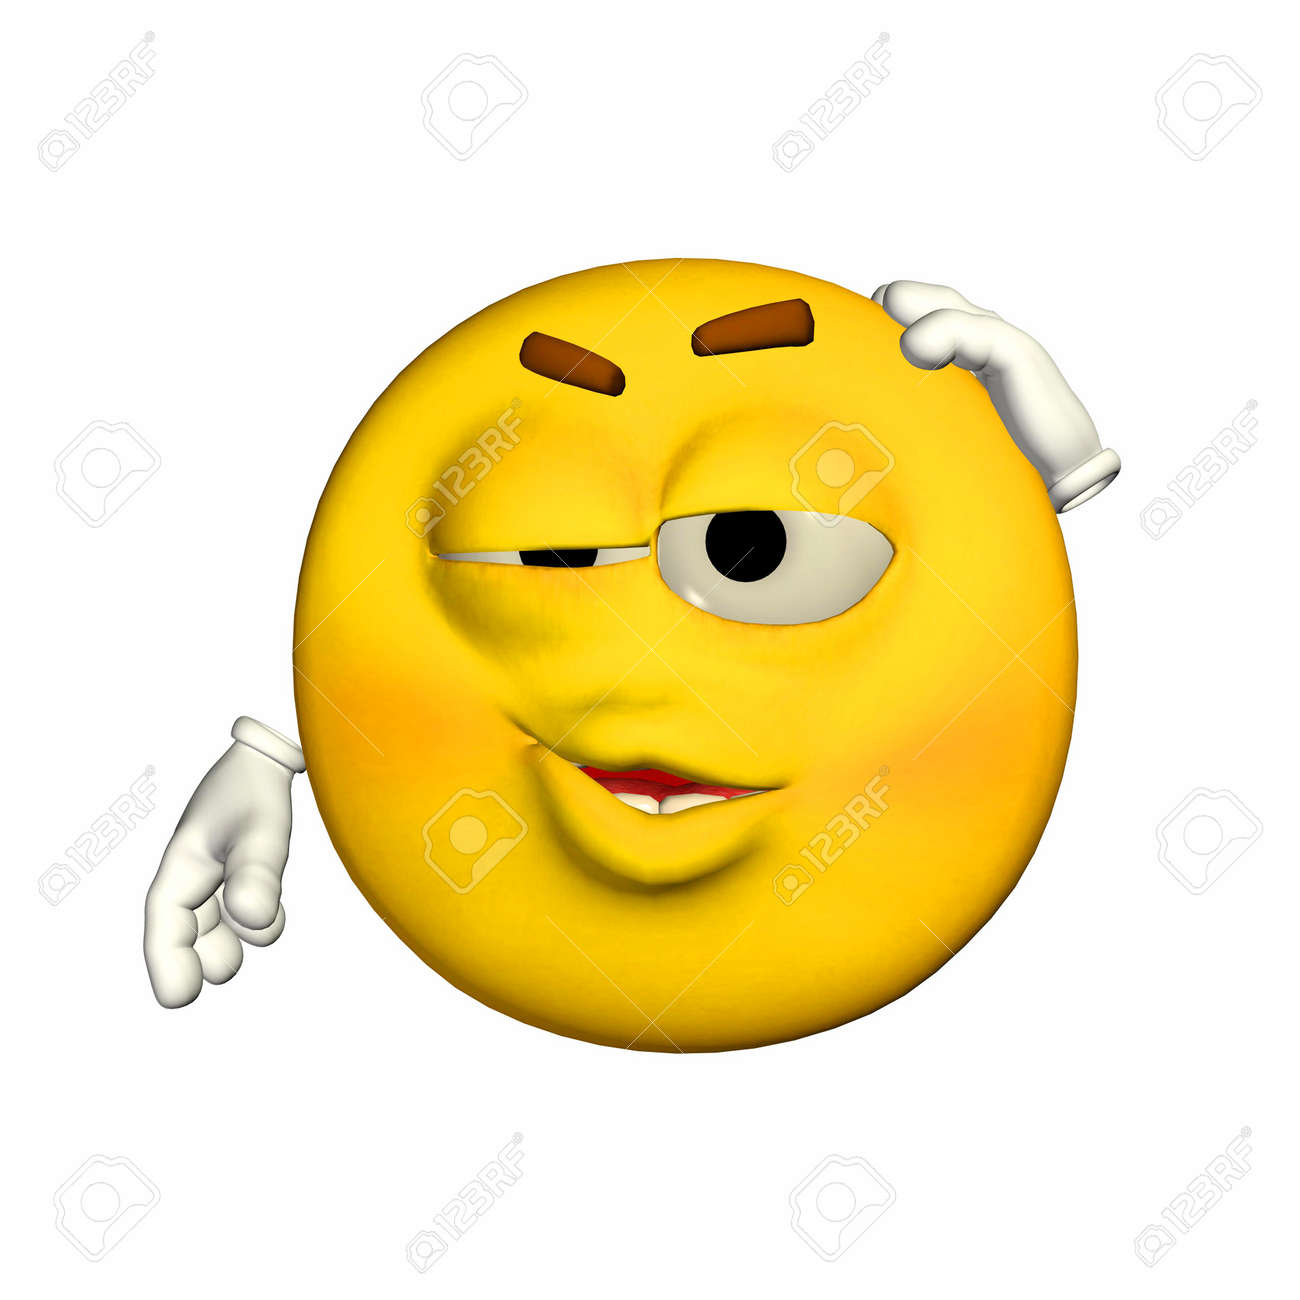 Illustration Of An Embarrassed Yellow Emoticon Isolated On A ...